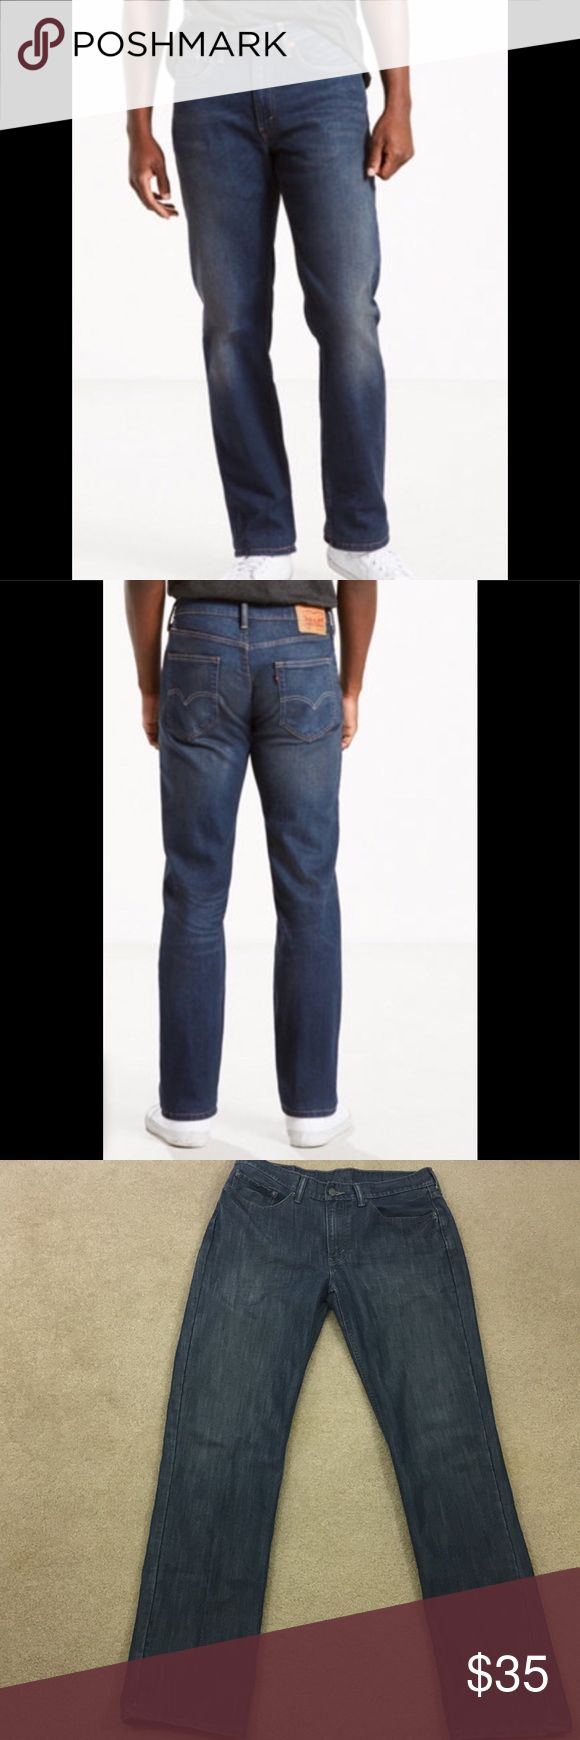 Men's Levi 514 jeans 514's in excellent condition. Soft cotton, light distressed look Levi's Jeans Straight